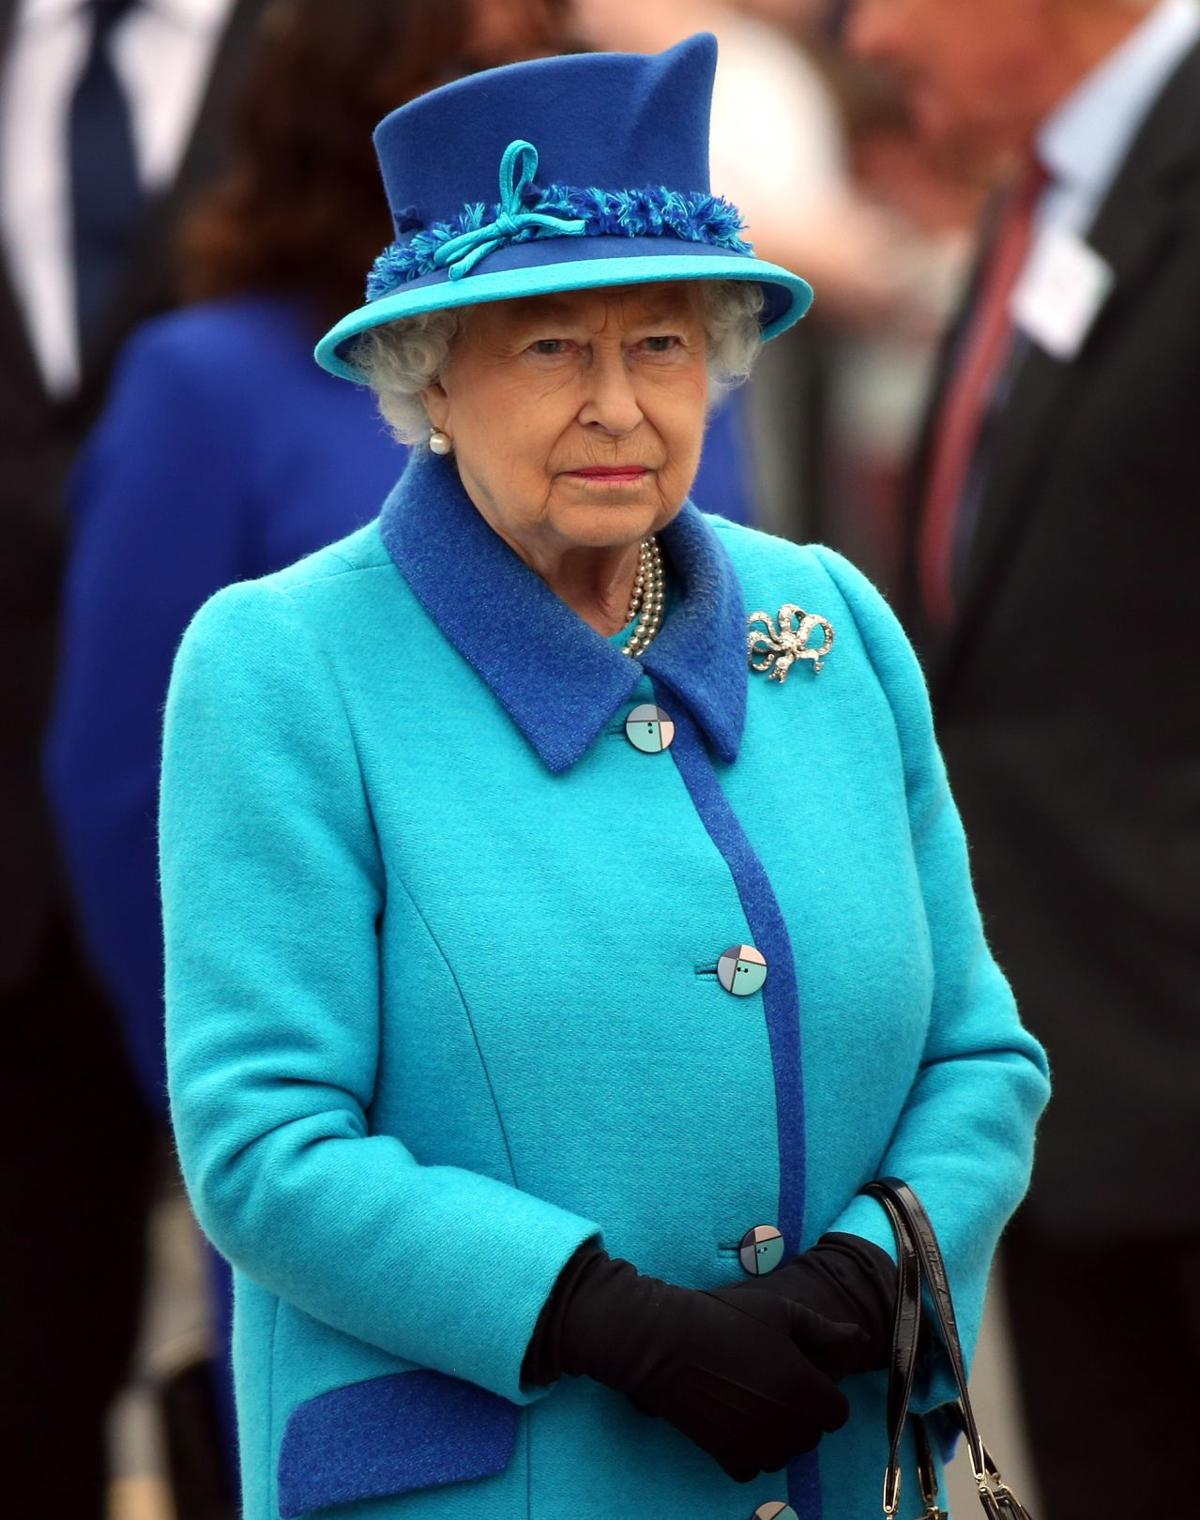 Queen confounds British left by sustaining the royal brand